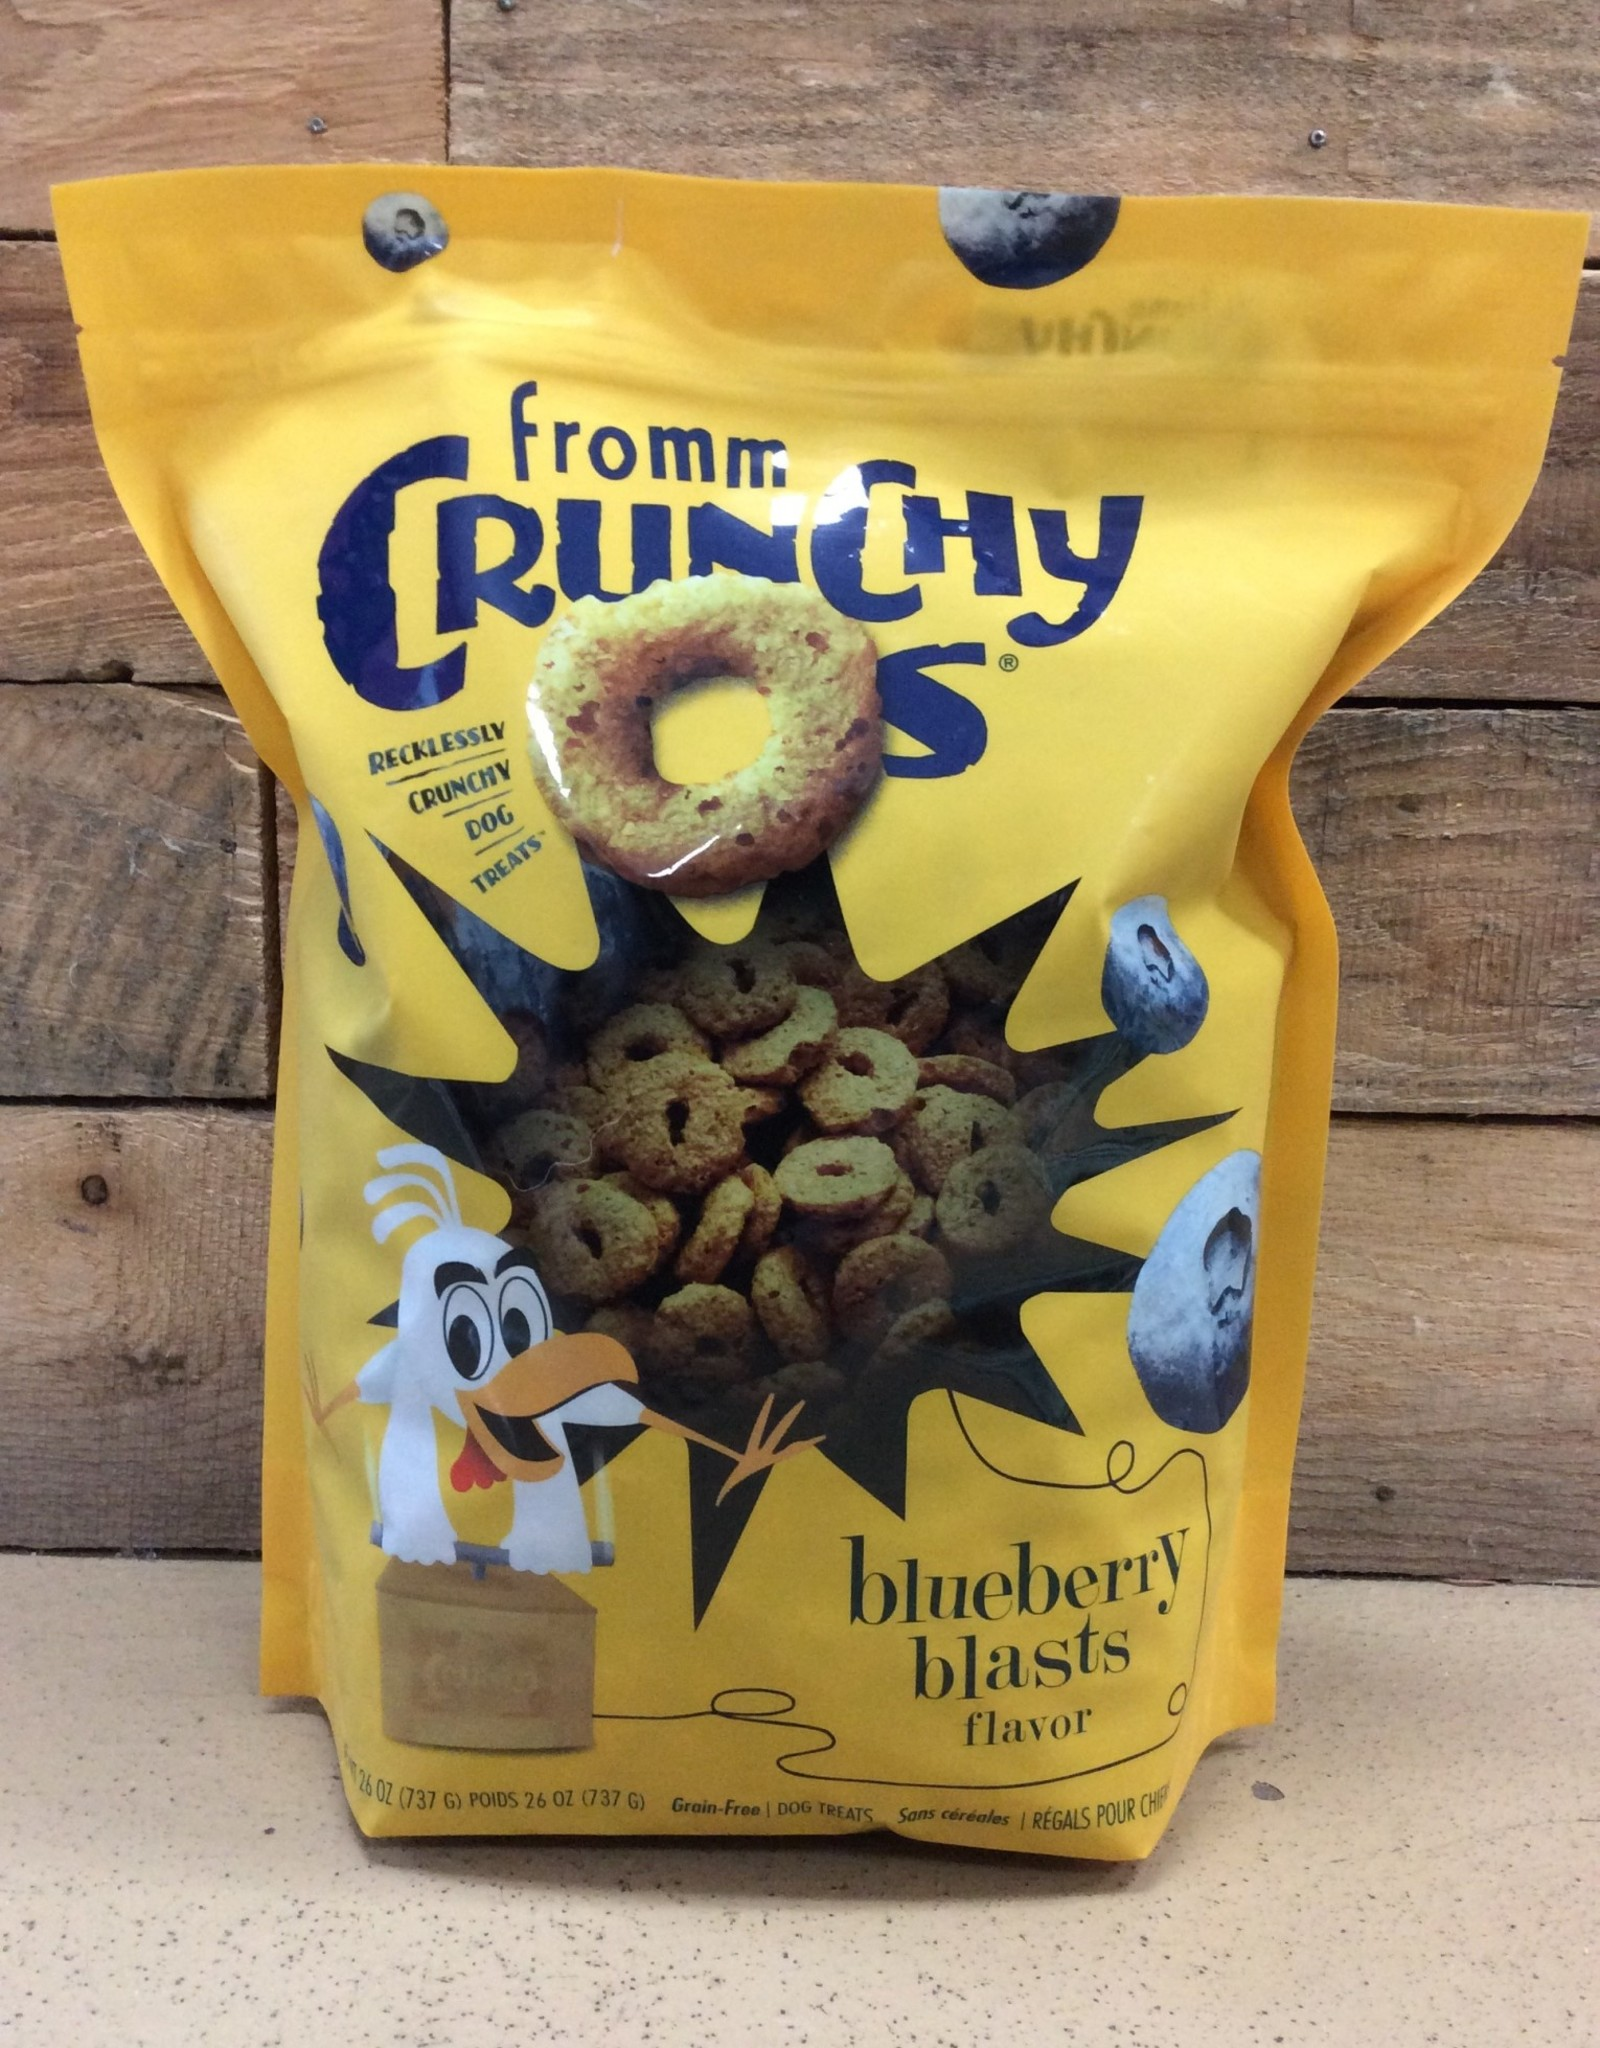 Fromm Family Foods Fromm Crunchys O's Bluberry 26oz